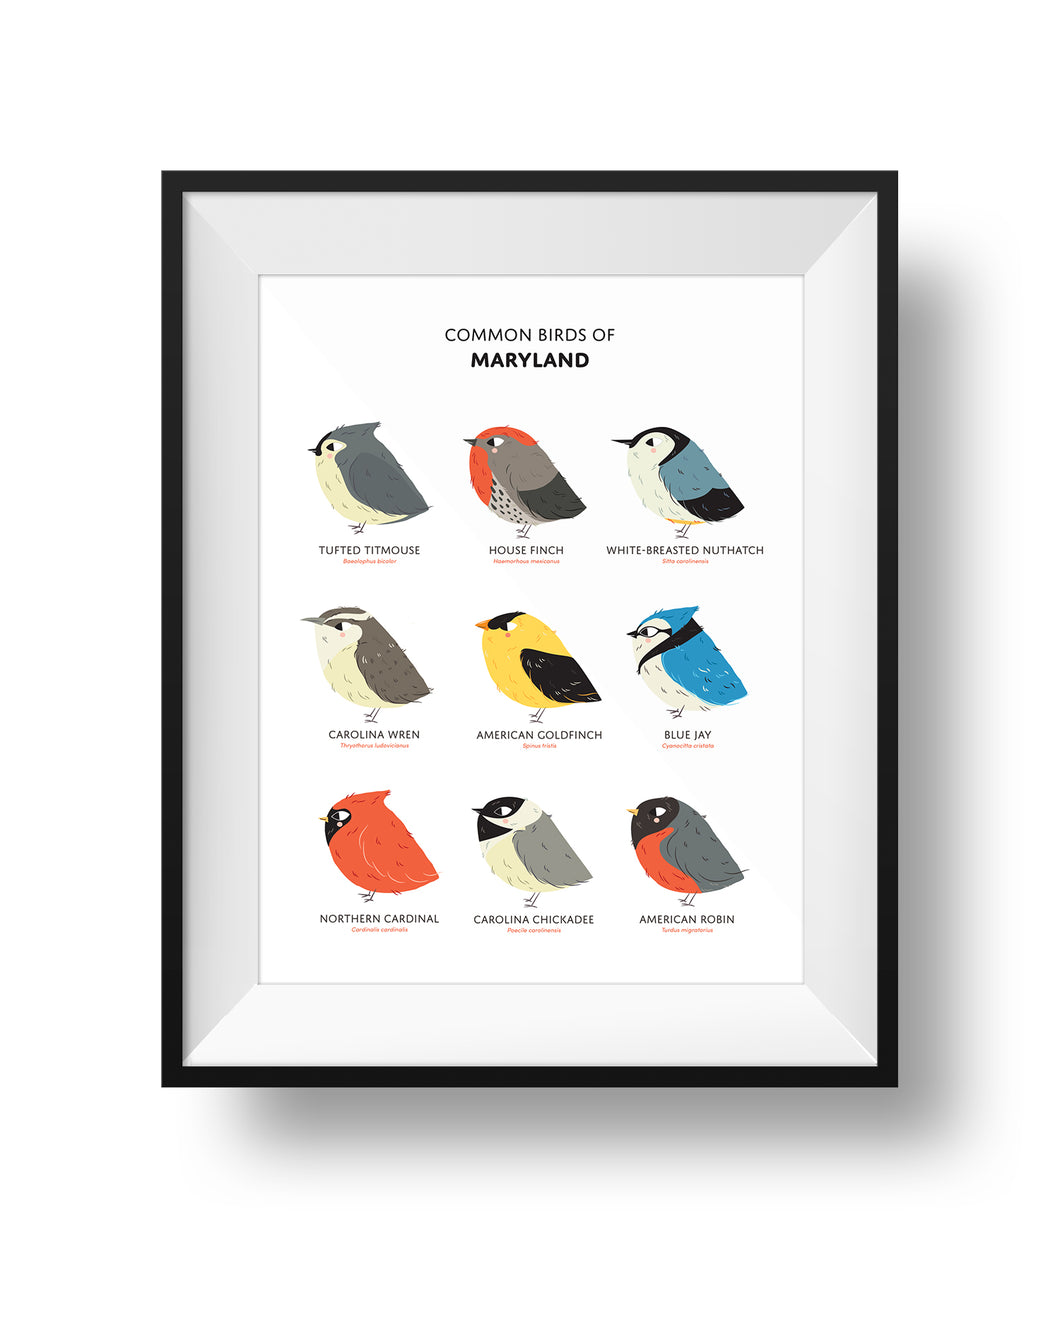 Nine Common Birds in the State of Maryland in a frame